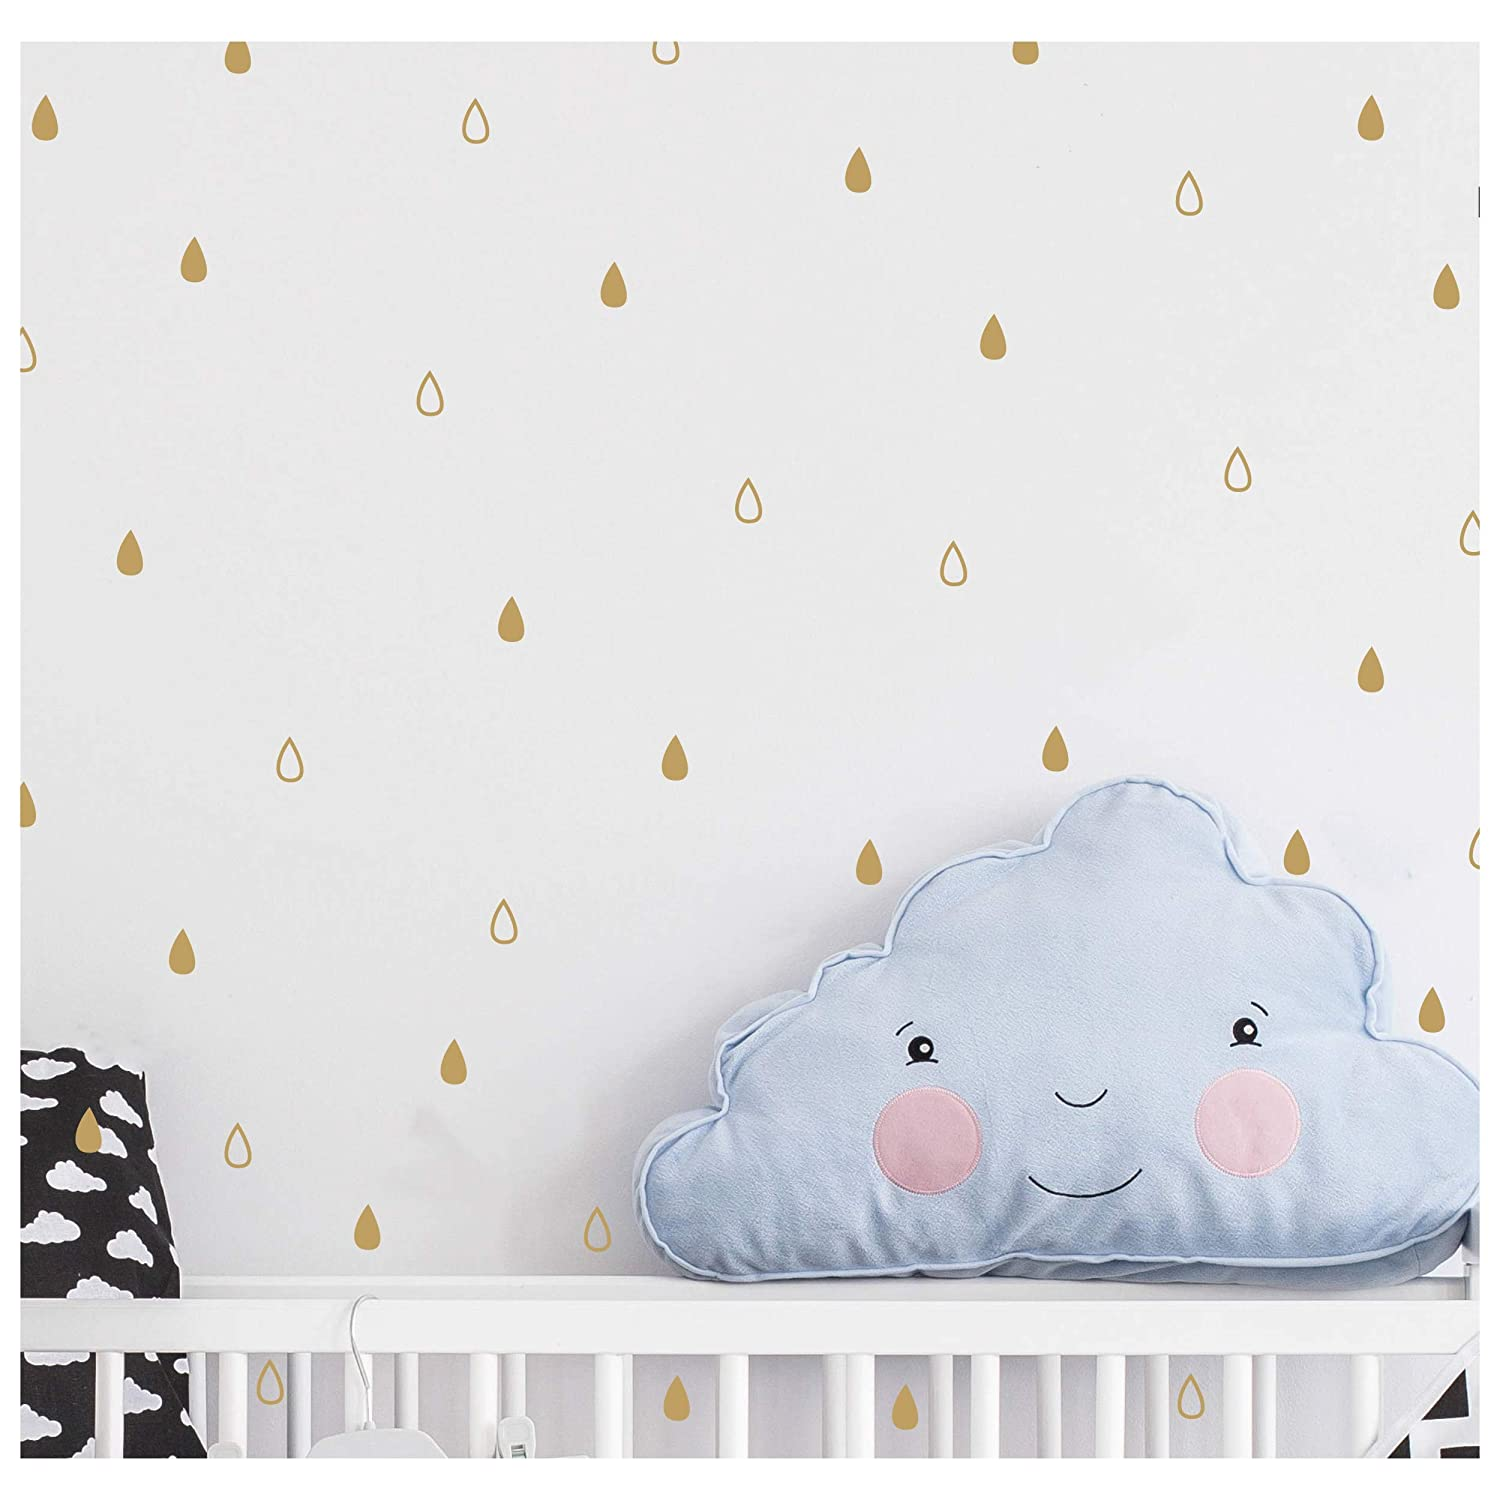 200 Pieces Set Raindrop Wall Decals Vinyl Stikers Nursey Kids Room Decor Baby Boy Girl Bedroom Art Decoration Design YMX07 Gold